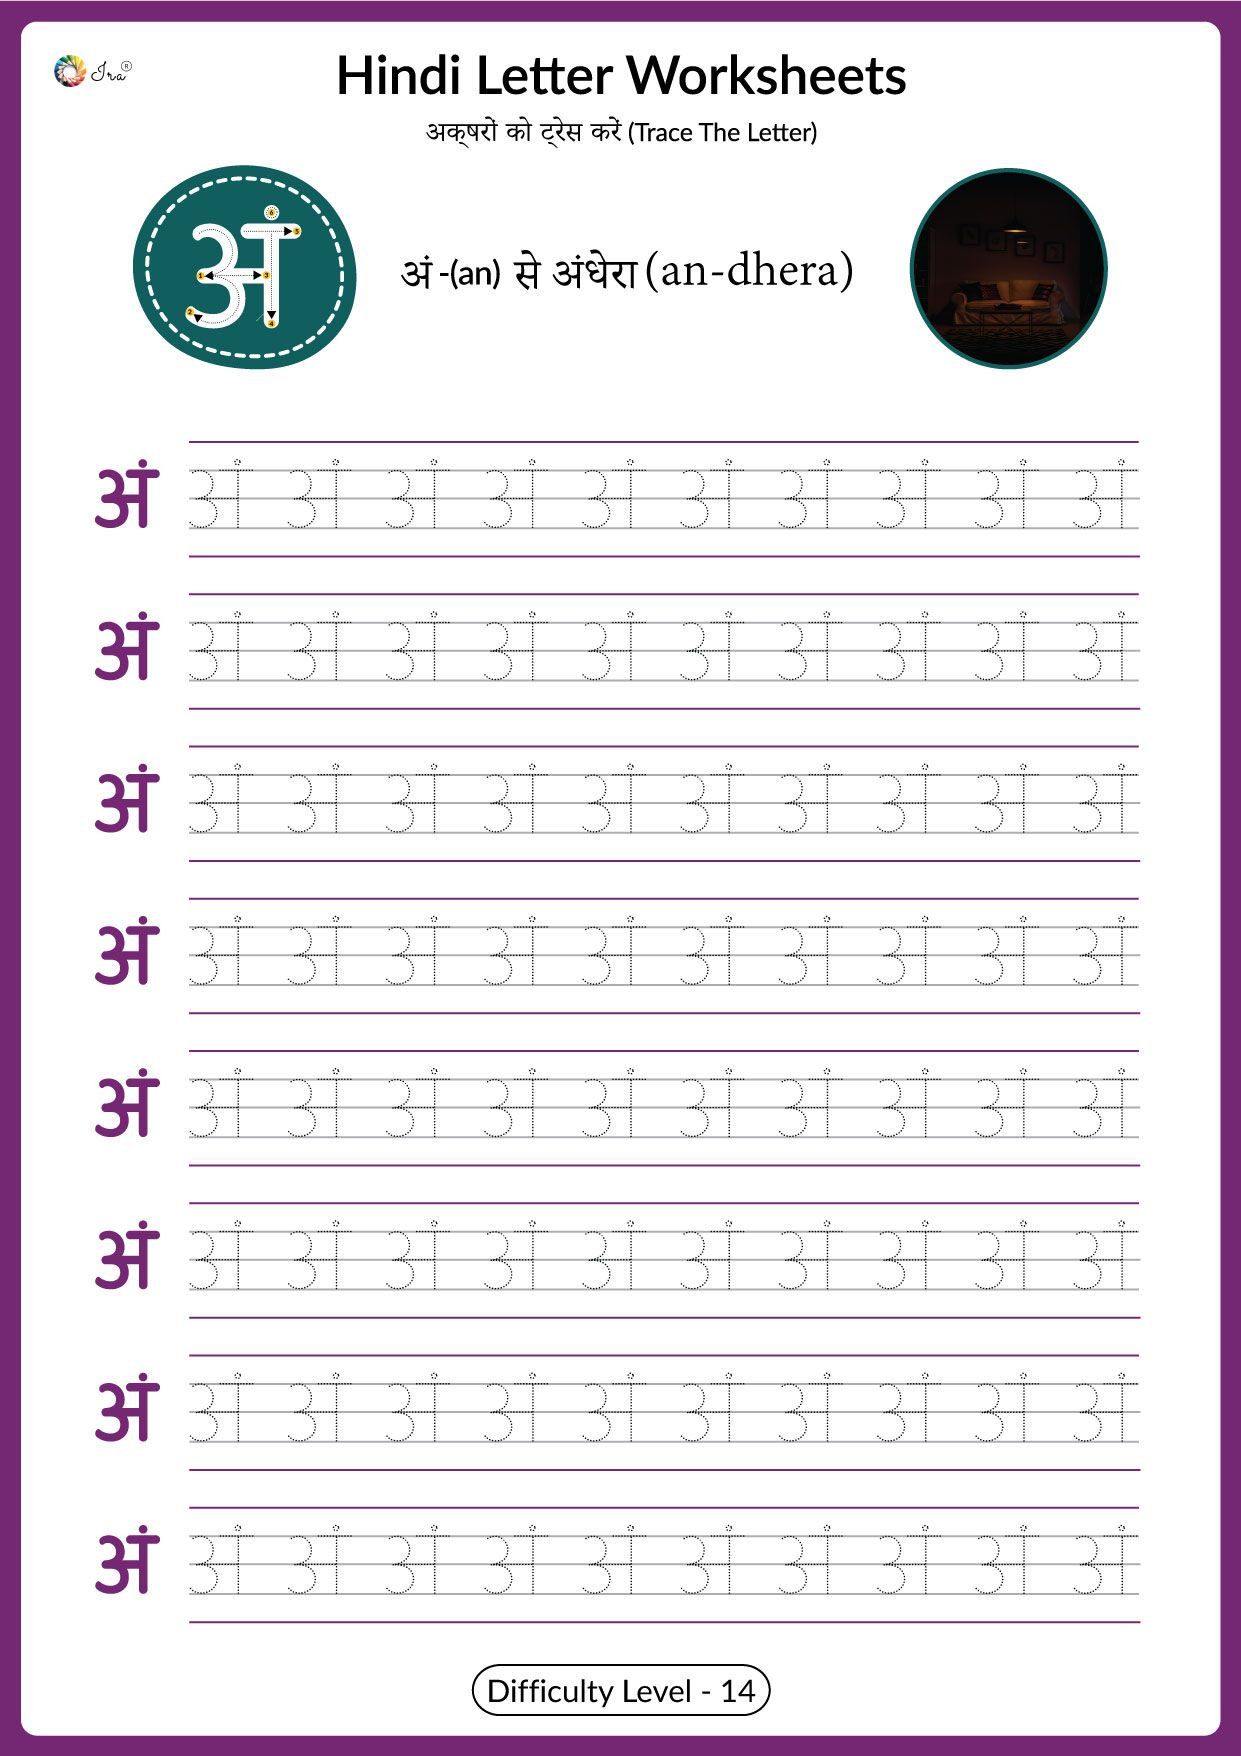 Hindi Letter Writing Worksheets For Nursery Kids Letter Writing Worksheets Writing Worksheets Worksheets [ 1756 x 1241 Pixel ]